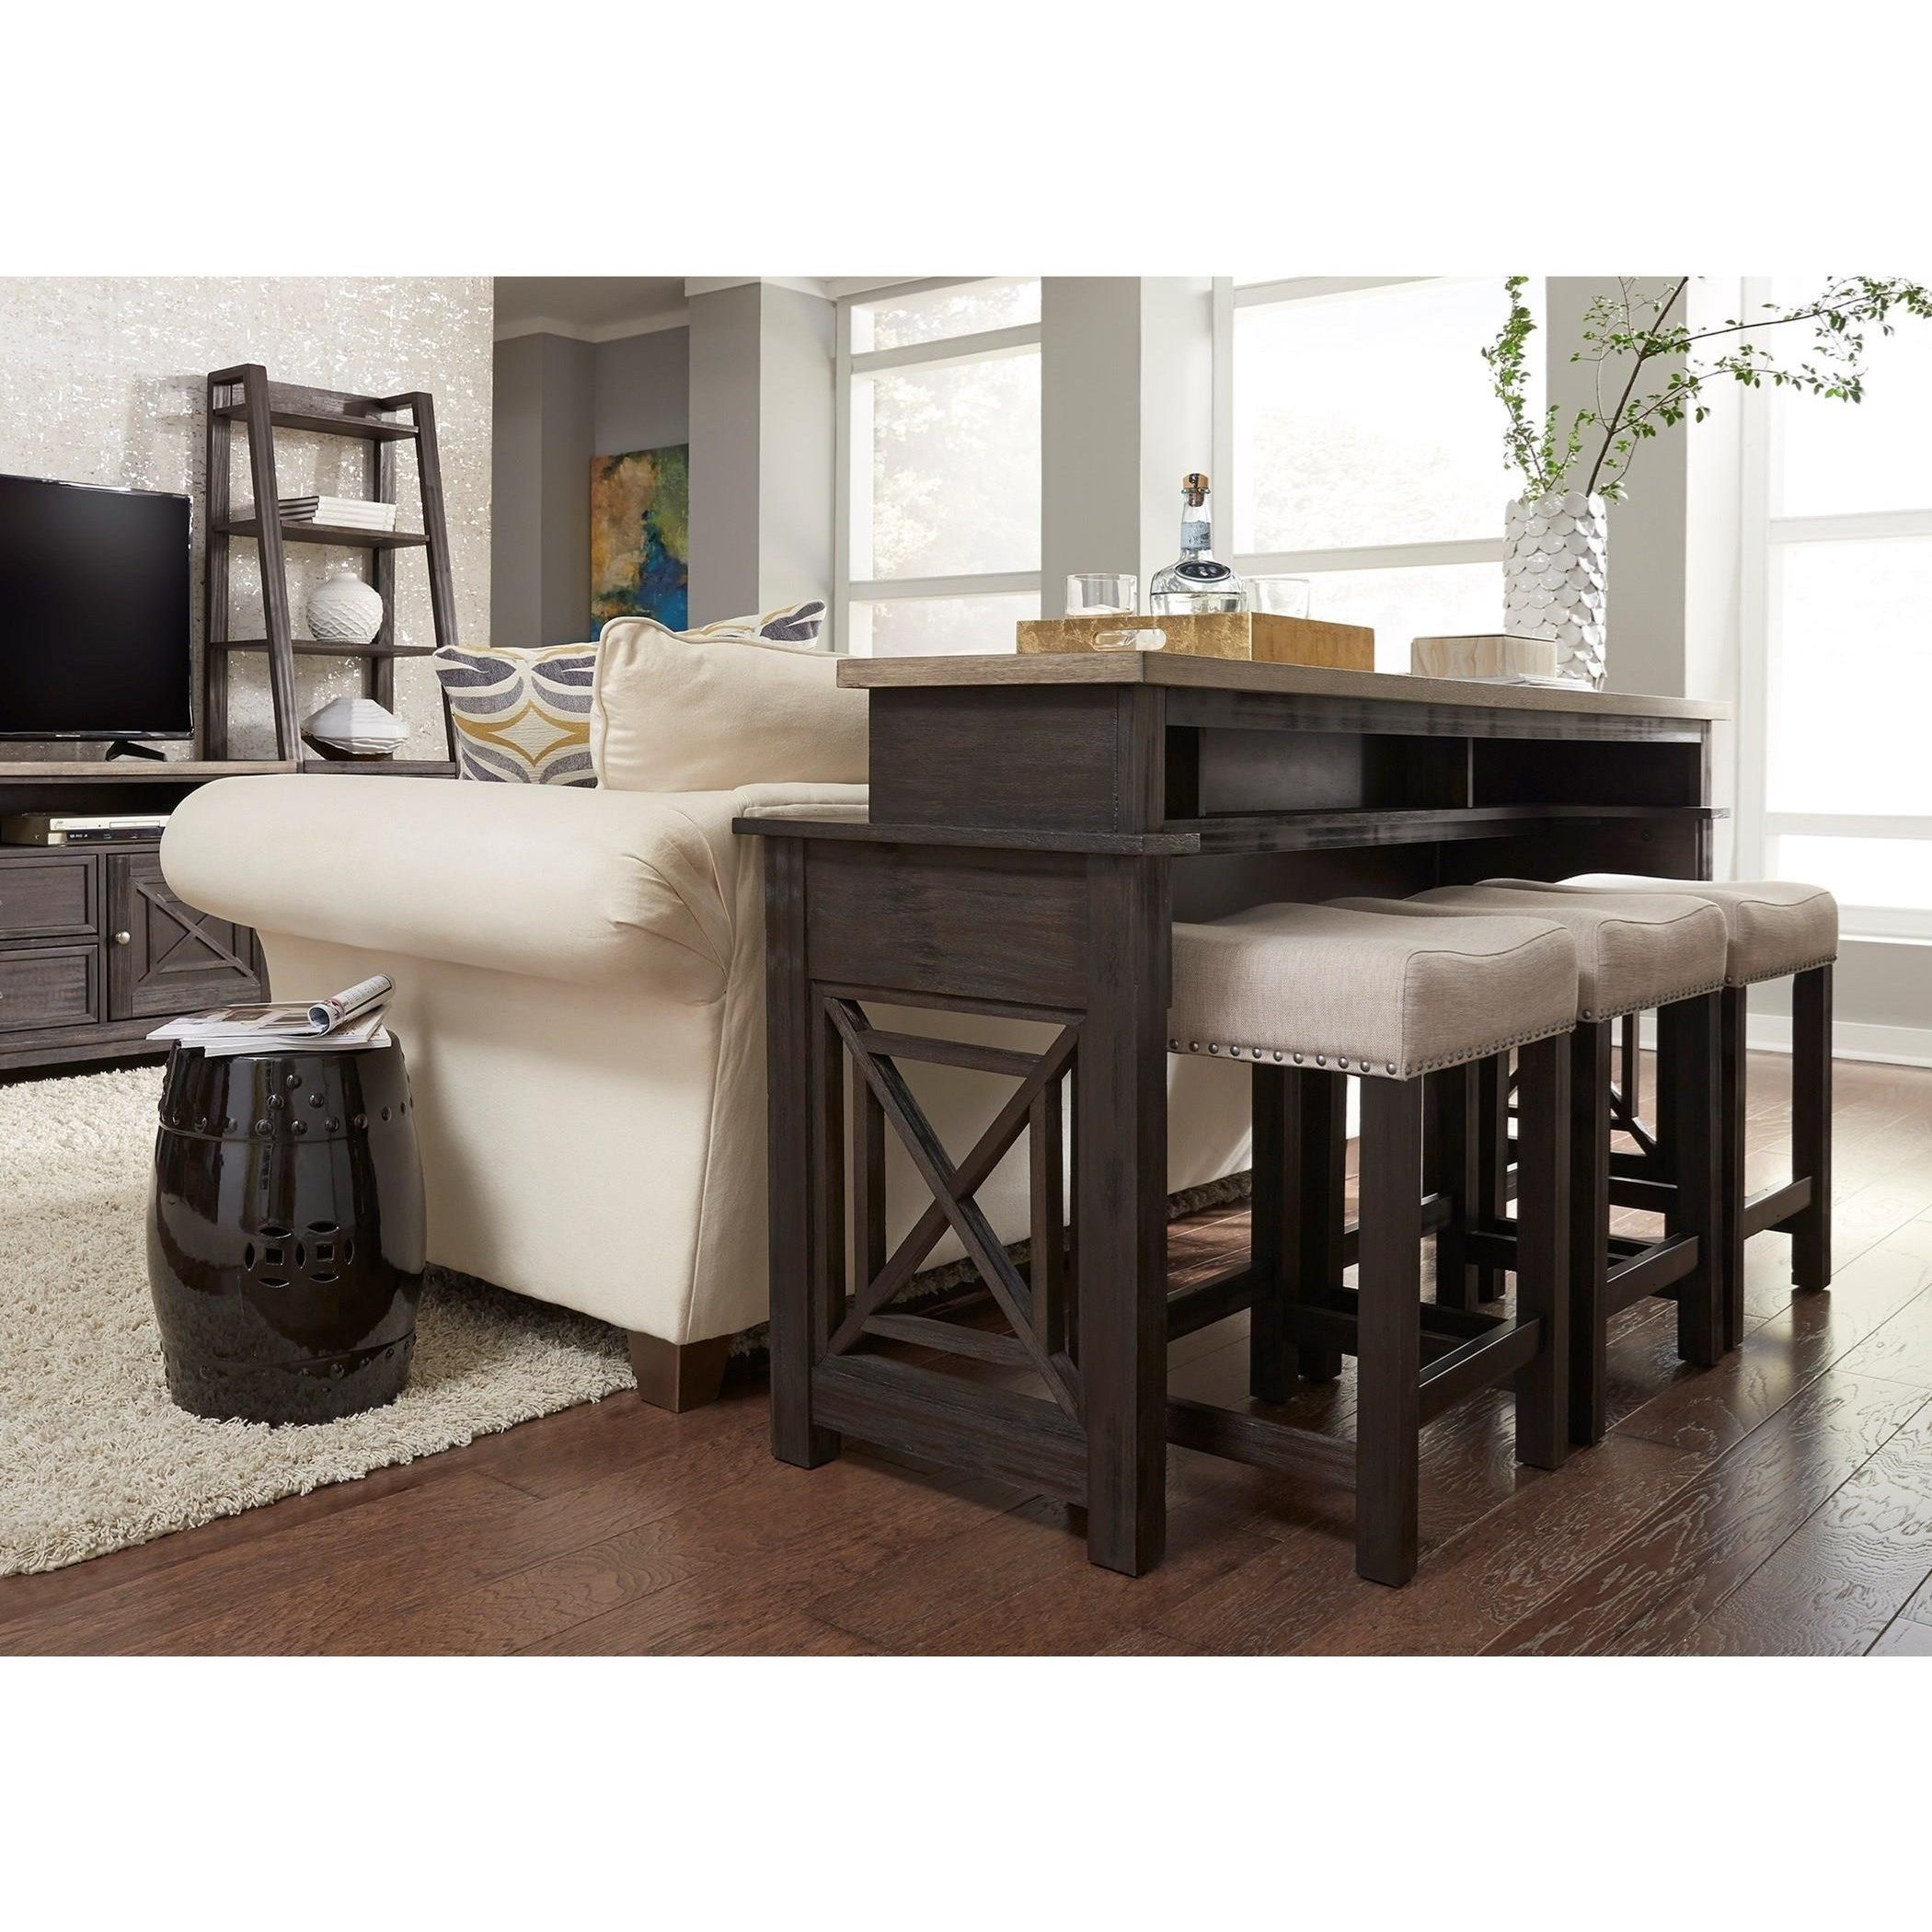 Place This Console Behind Your Sofa Or Use It In Your Kitchen Or Bar Space For A Multi Functional Piece That S Perf Liberty Furniture Furniture Bar Table Sets